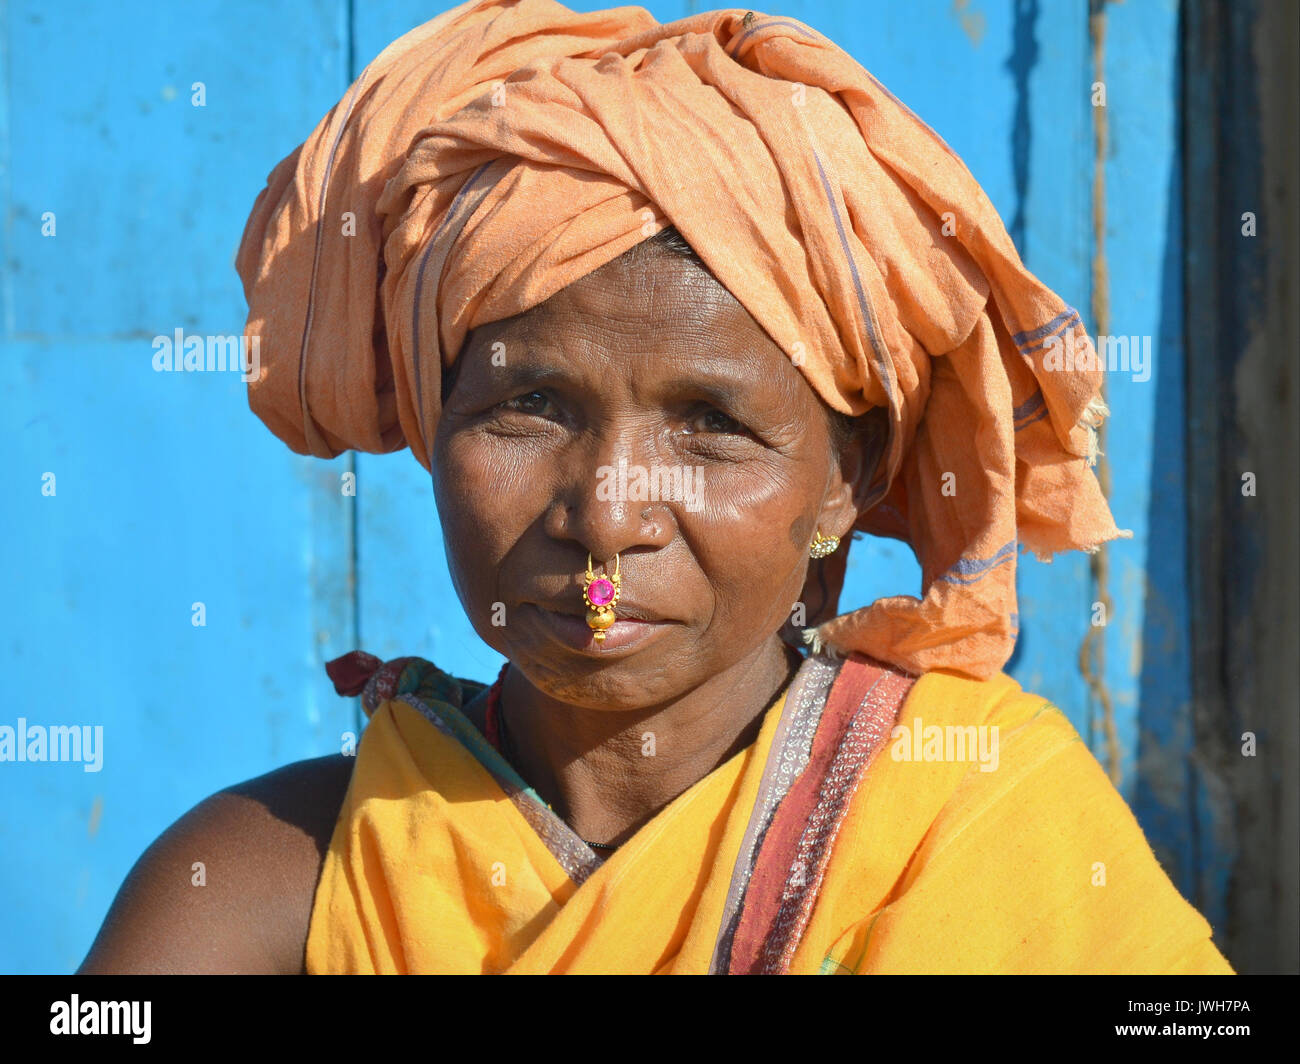 Closeup street portrait (outdoor headshot, seven-eighths view) of a mature Indian Adivasi market woman with gold - Stock Image